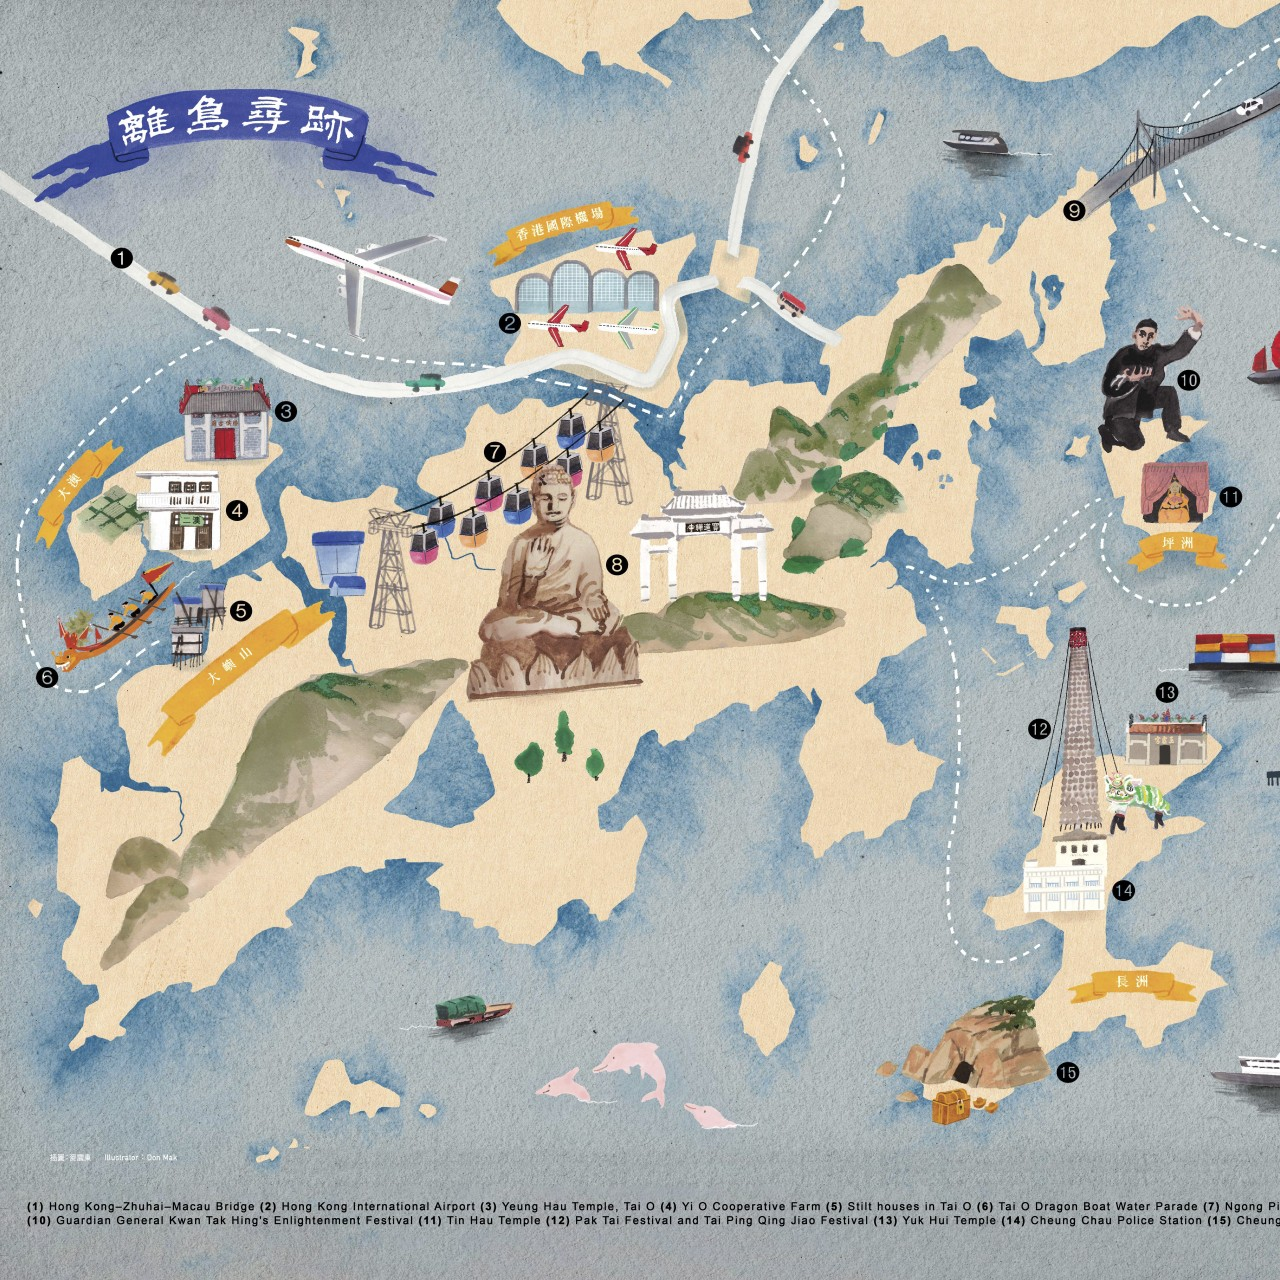 History of Hong Kong's outlying islands celebrated in